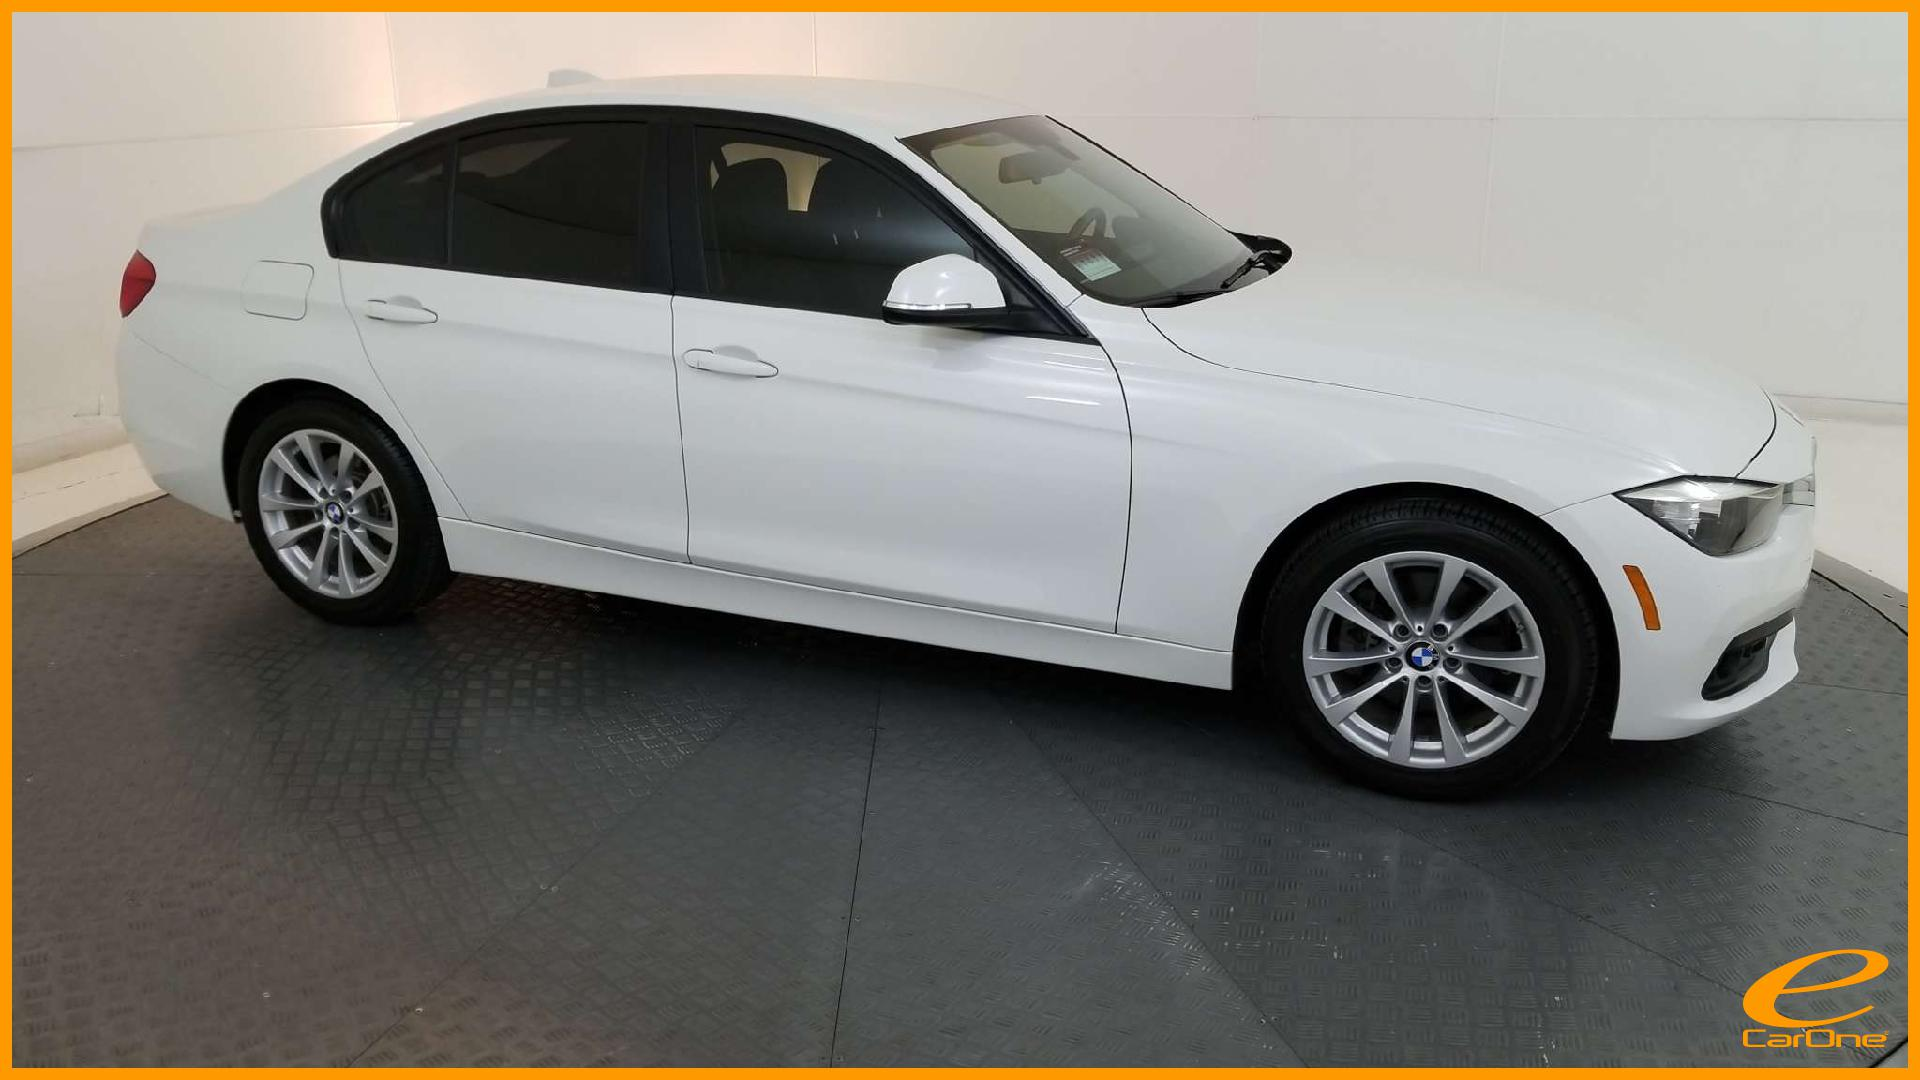 Used Luxury Cars >> Used Luxury Cars Dallas Fort Worth Area Bmw Mercedes Benz